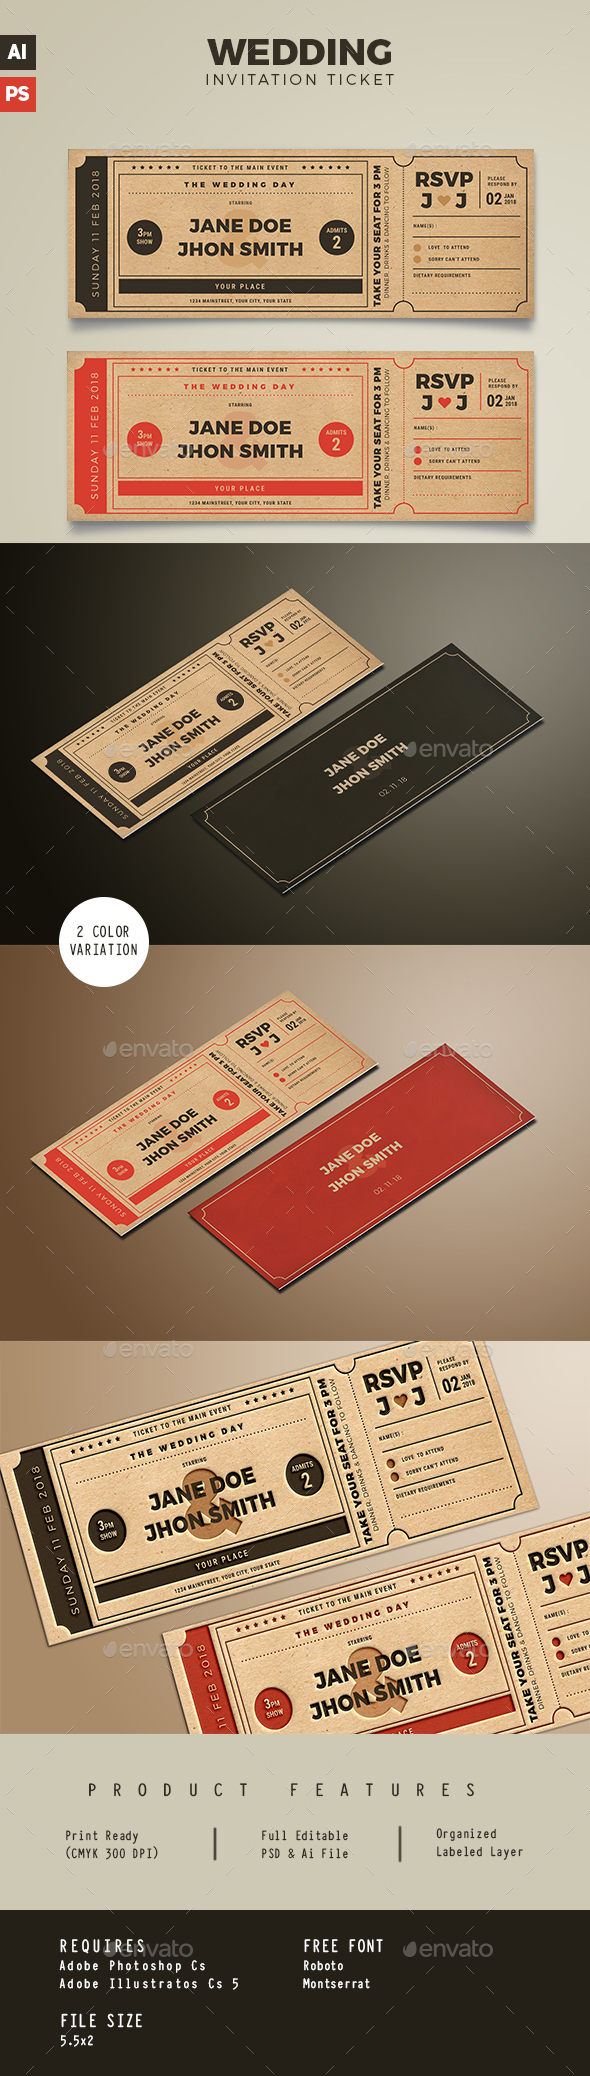 Wedding Invitation Movie Ticket - Weddings Cards & Invites